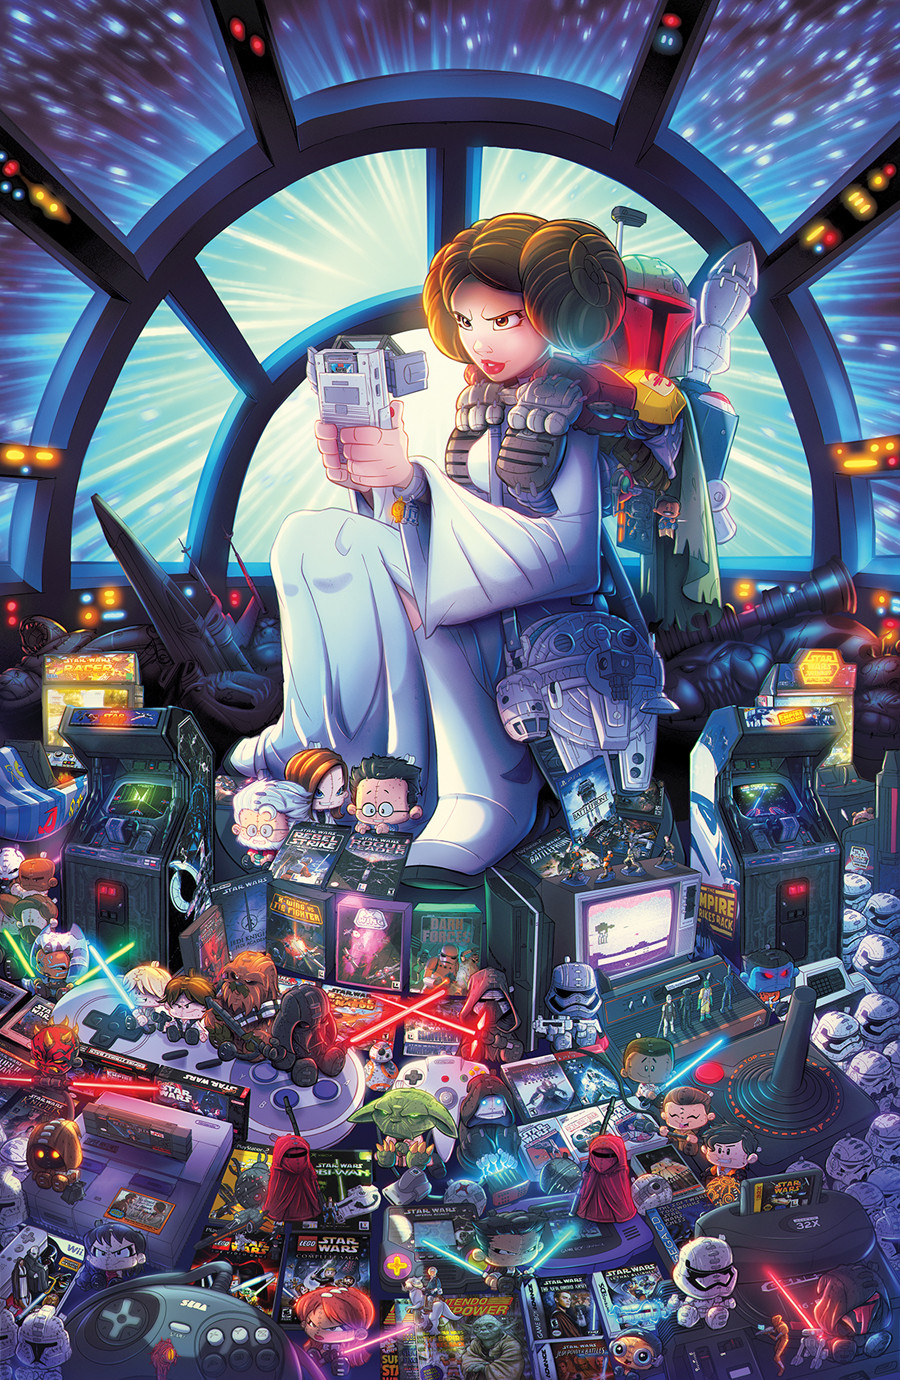 Star Wars Retrogaming Cover Art